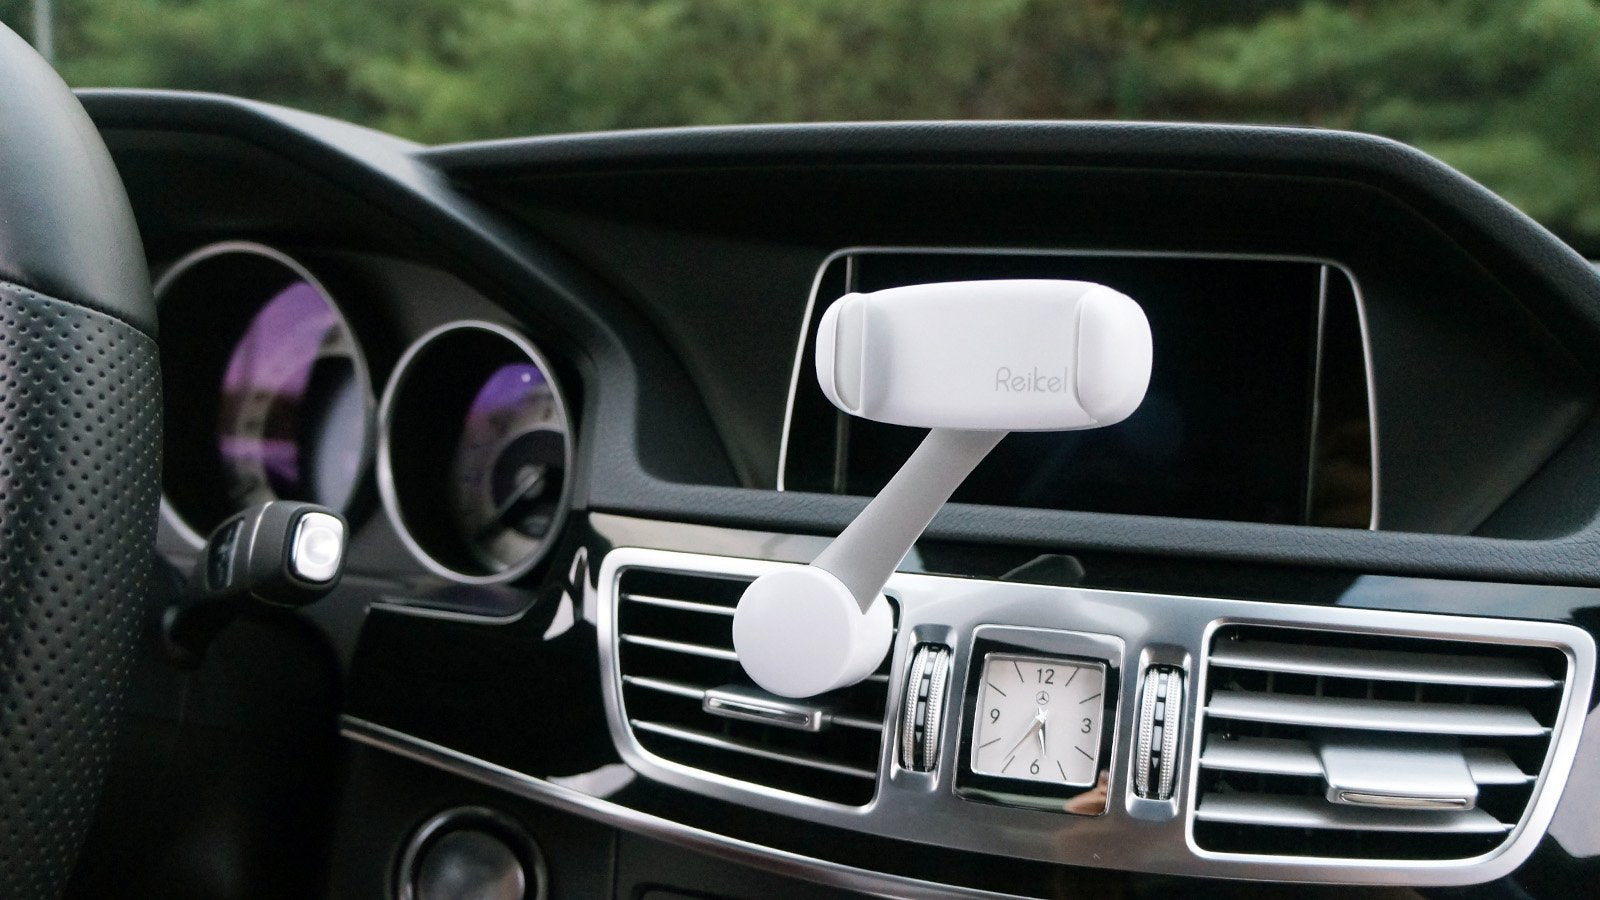 Reikel 360° All Round Grip Smartphone Car Mount - anlander.com | English